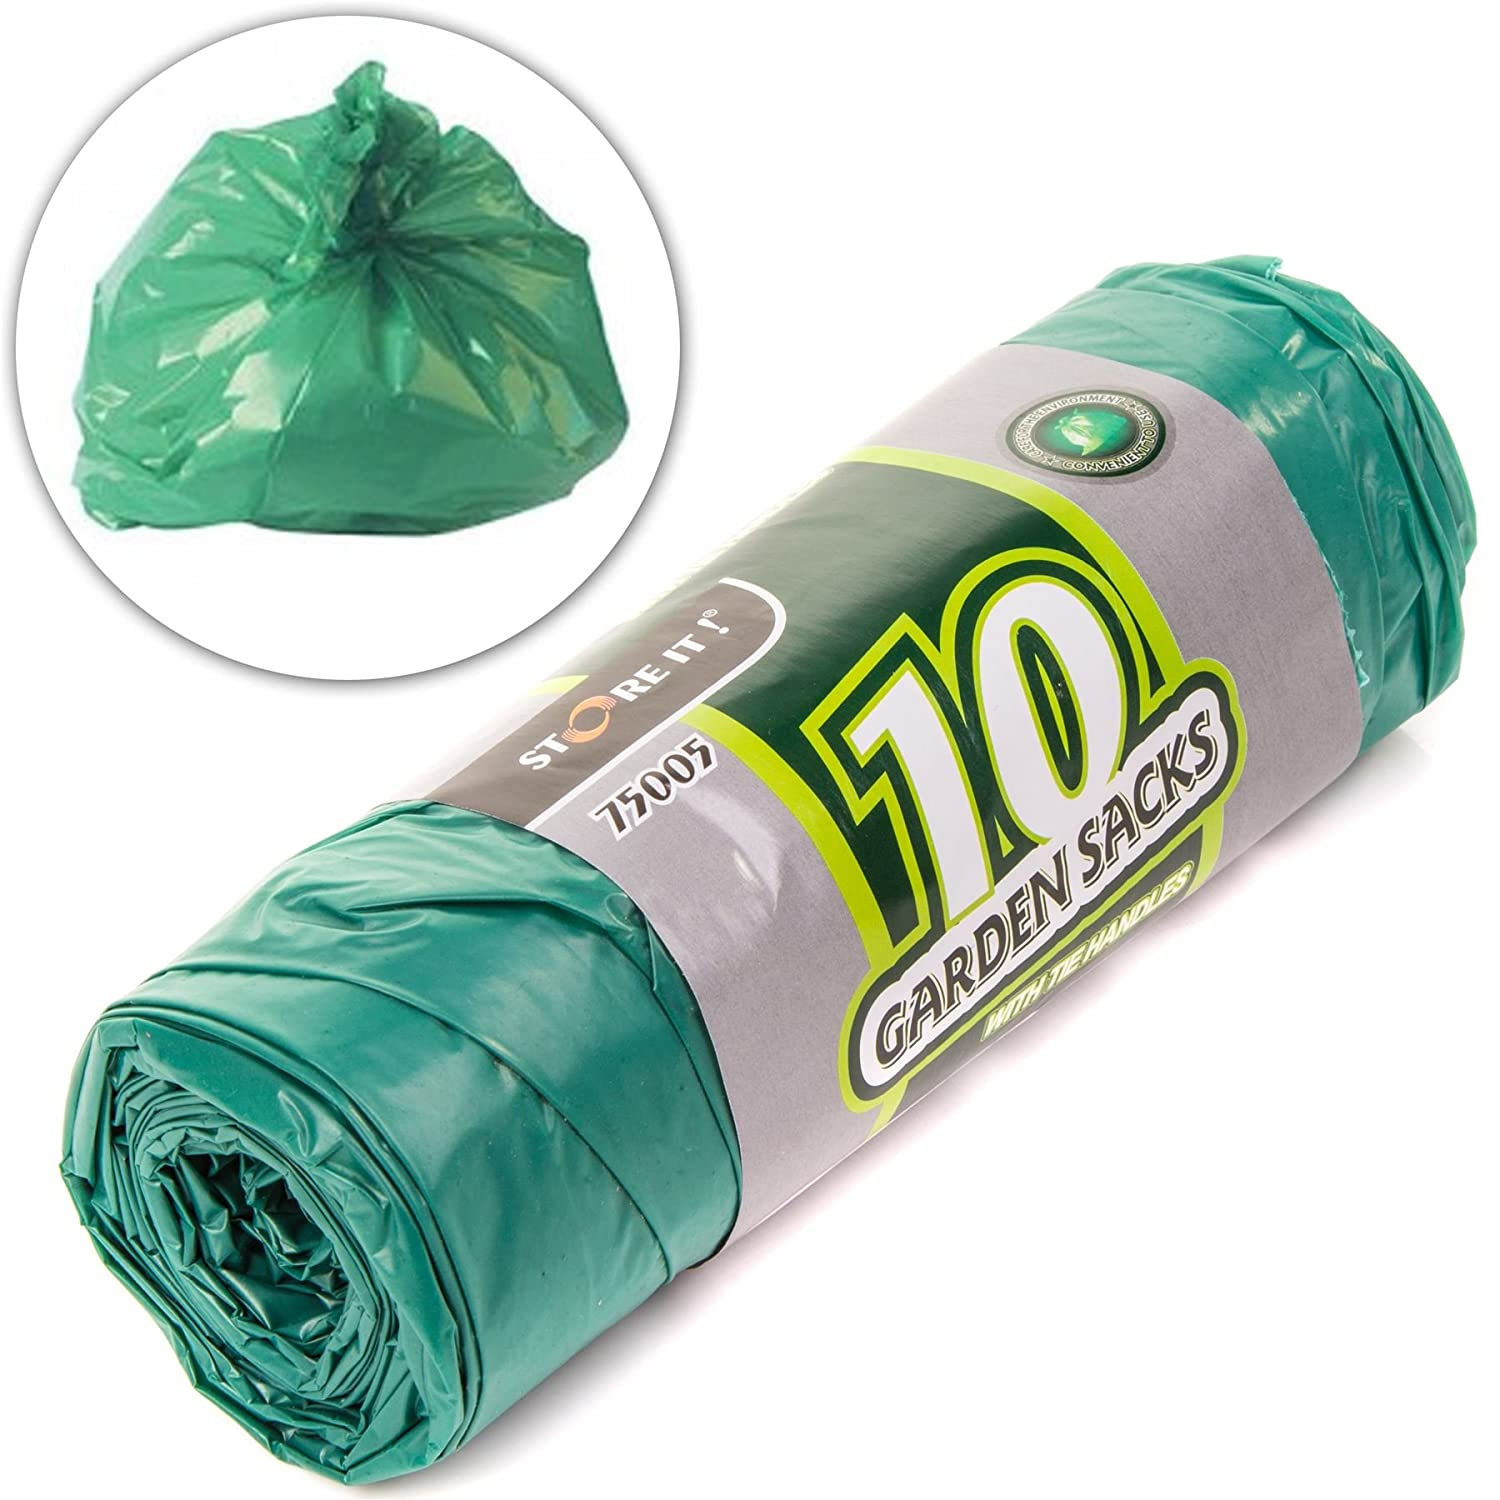 10x Large 80 Litre Gardening Sacks - Tie Handled Refuse/Rubbish/Waste Bin Bags White Hinge